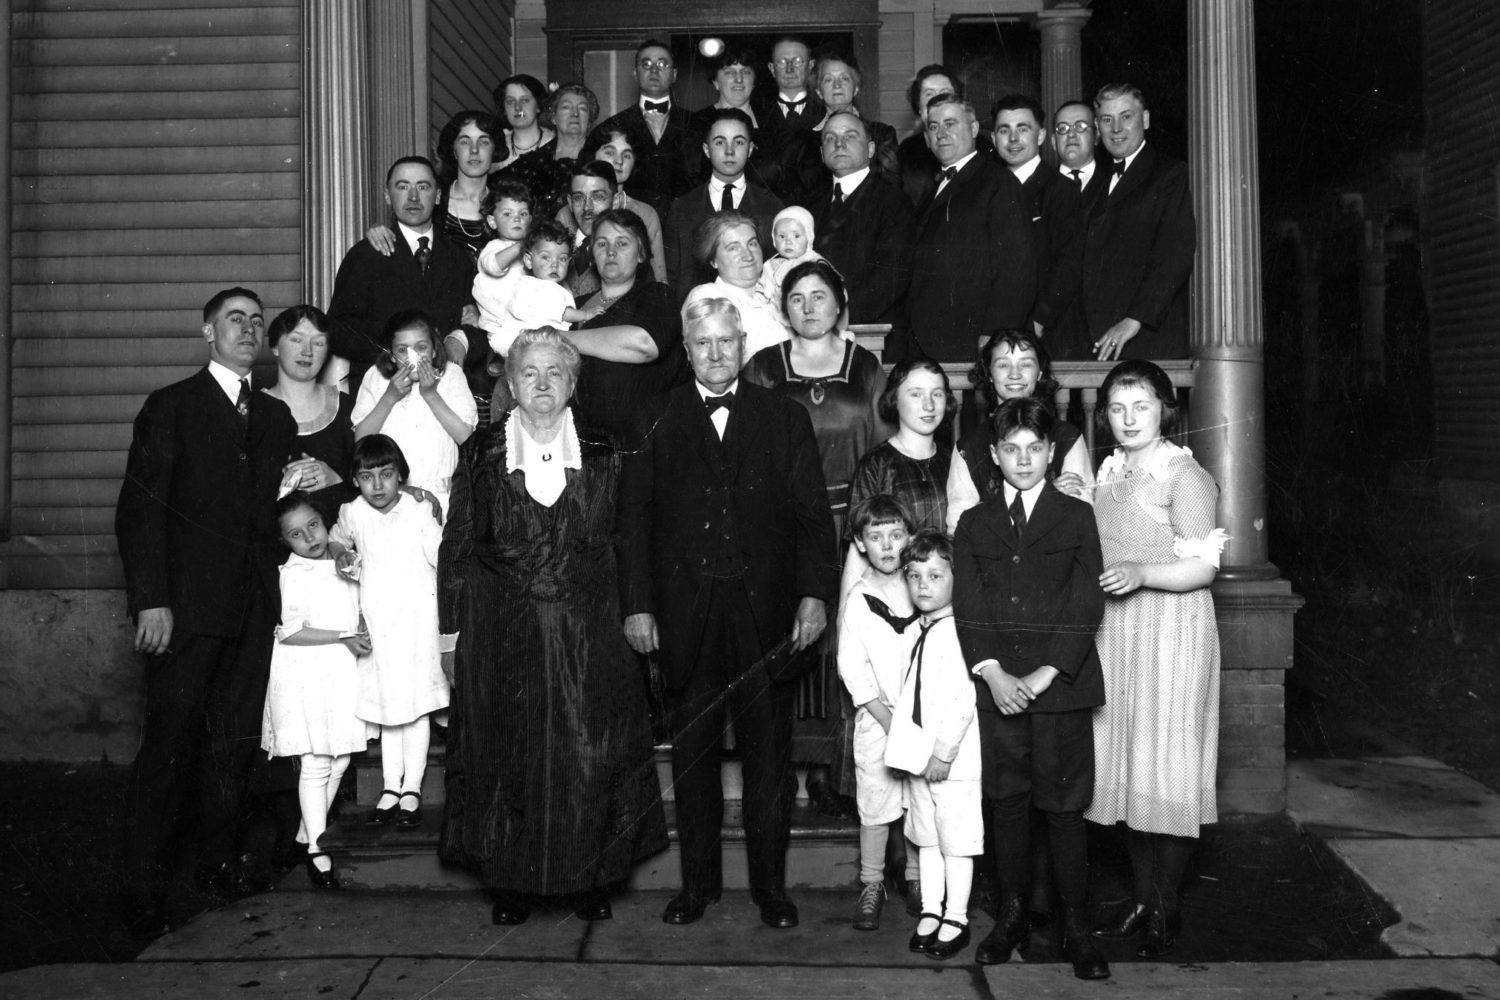 "Ma and Pa Tierney celebrated their fiftieth anniversary at their house at 208 Lyndhurst Street in 1920.  Top row from left: Maime Tierney, Maney Moynihen, Raymond J. Tierney Sr., Mary Weitz, Andy Moynihen, Eleanor Nell (Tierney) Craddock, Emma Moynihen Foster Middle Row: Walter L. Tierney, Loretta Weitz, Lucille Weitz, Clare and Clive Lansing, Nell Lansing, Bernard Weitz, Ed's wife with Winifred, Gus Weitz, Edward J. Tierney Jr., Edmund Weitz, Mr. Foster, Joseph Bernard Tierney Front row: Arthur John Tierney, wife Anna Tierney, Winifred Lansing, two young girls are Rita Tierney and Elizabeth Lansing, Ma and Pa (Edward J. Tierney and Winifred Maloney) Tierney, Elizabeth M.""Betsy"" Tierney, Mary Tierney, Jane Lansing., Margaret Tierney, two boys in white are Bob and Dick Lansing, Gerritt Lansing. > Suzanne Tierney, Art Tierney's daughter, provided identification."